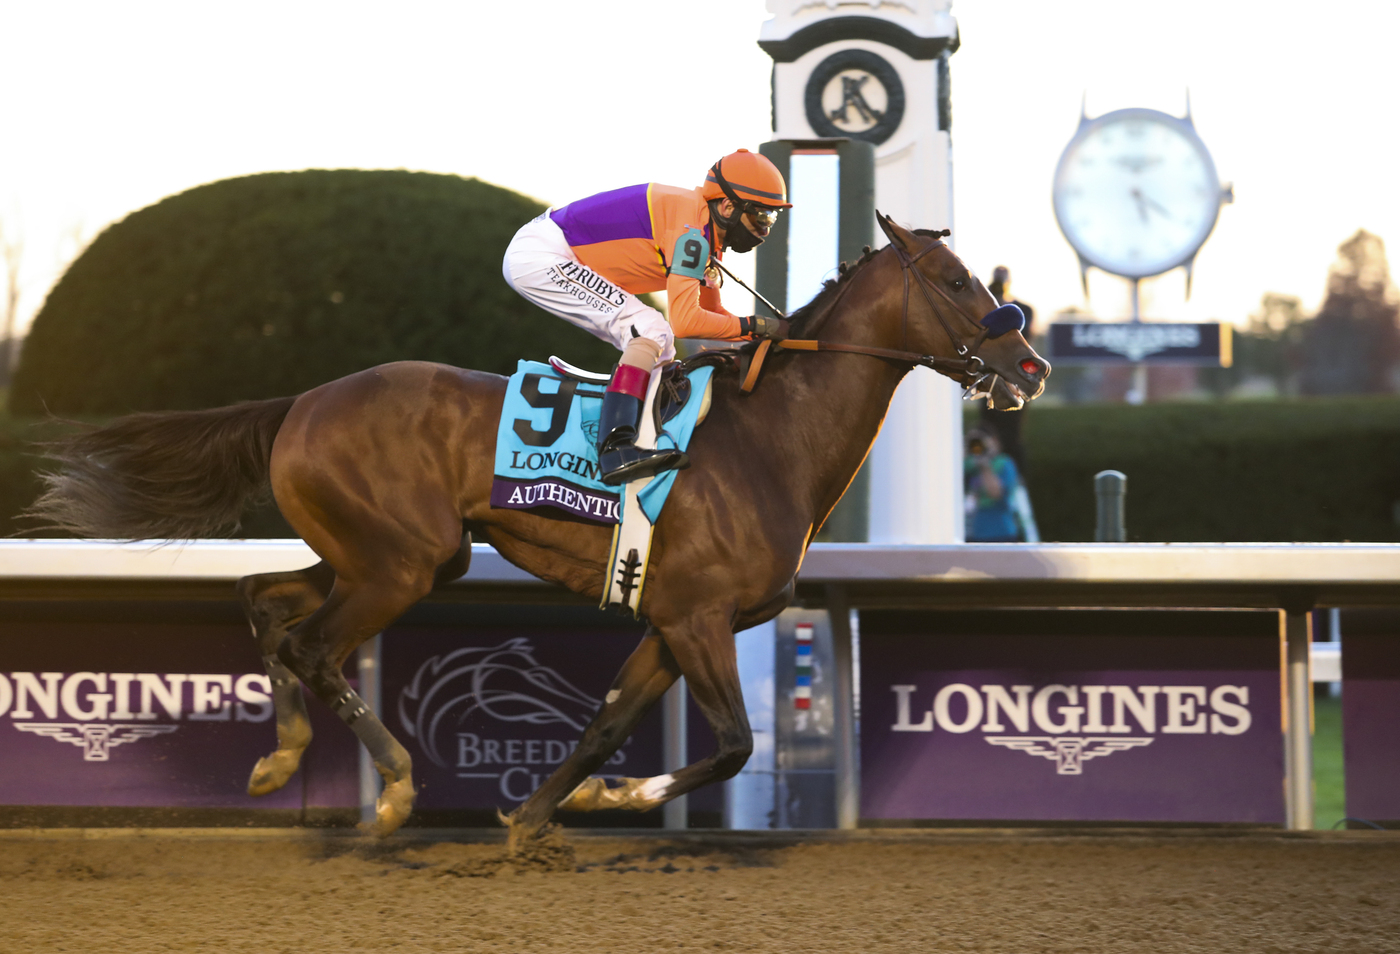 Longines Flat Racing Event: Authentic raced into victory at the 2020 Longines Breeders Cup Classic 1